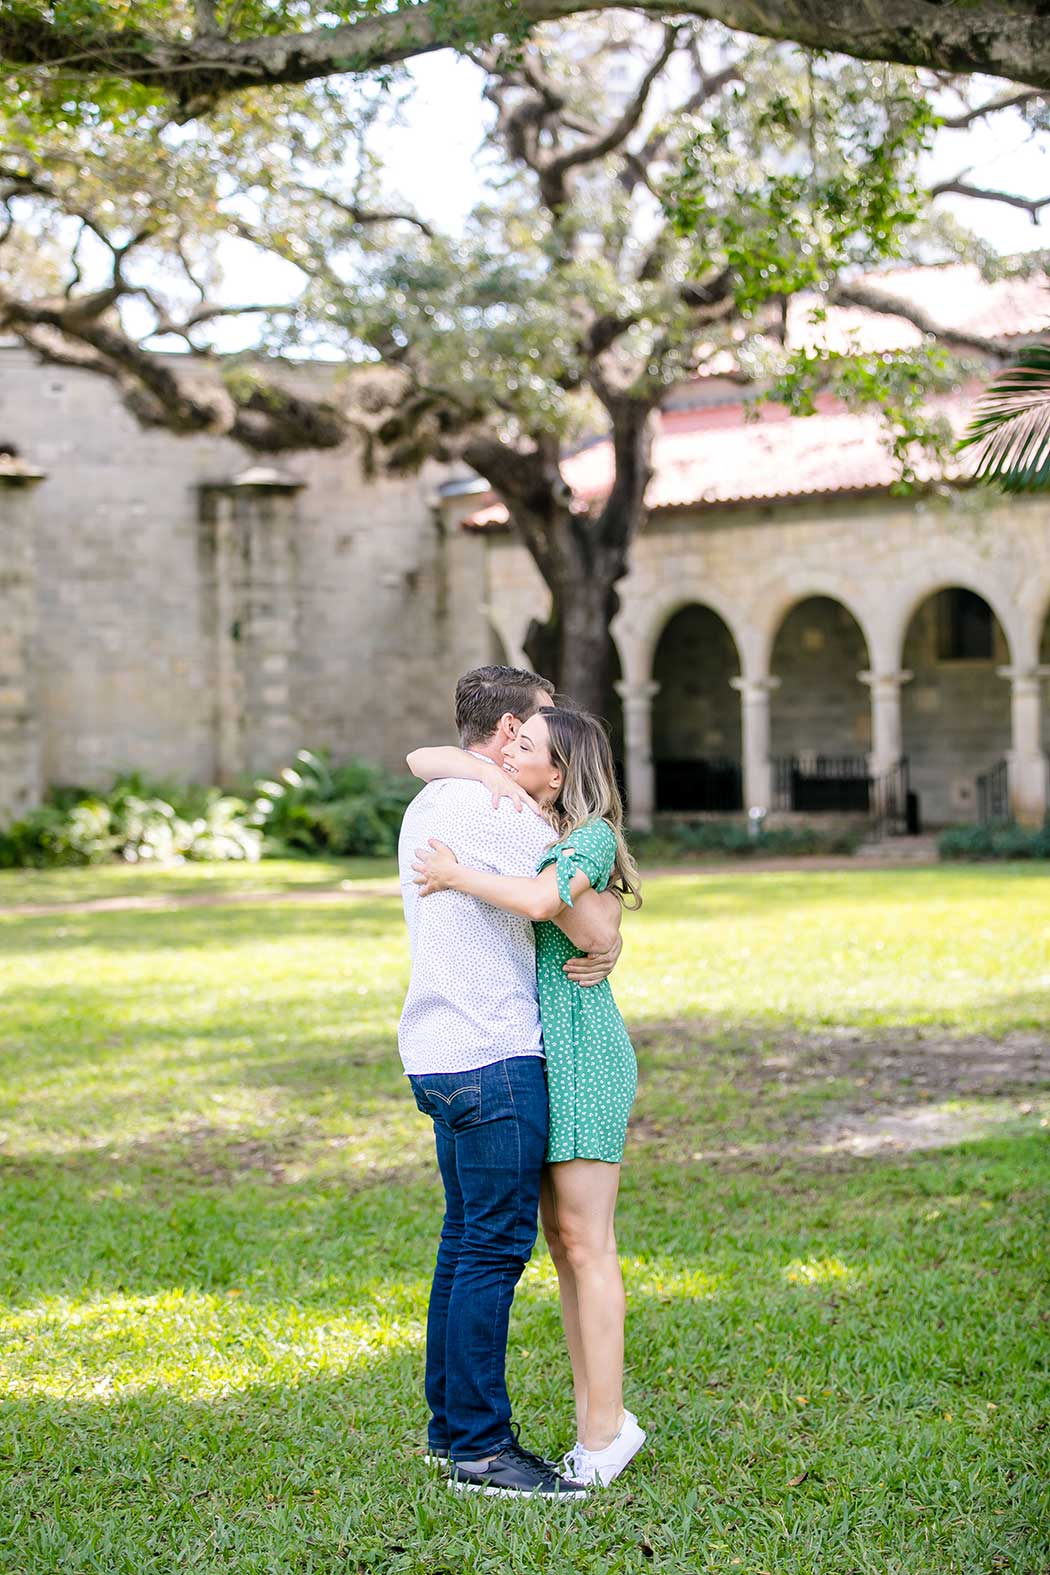 girl hugging boyfriend after surprise proposal | wedding proposal at ancient spanish monastery | engagement photographer fort lauderdale | ancient spanish monastery proposal photographer